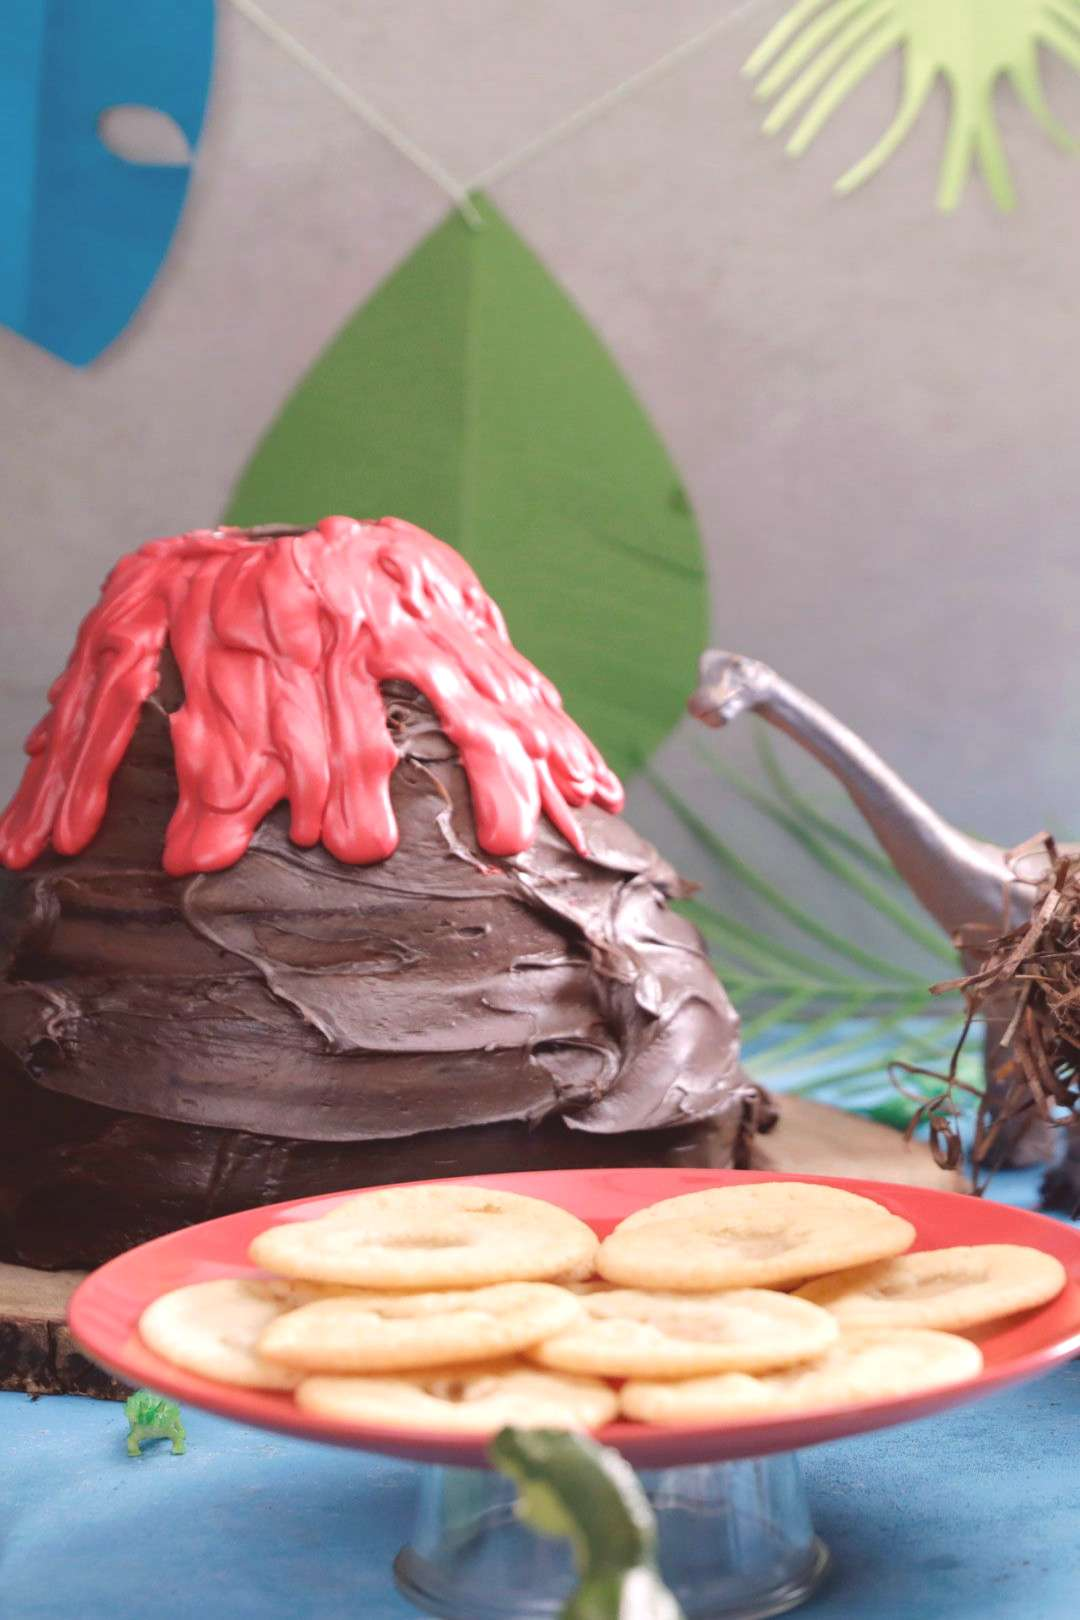 Dinosaur Birthday Party Score dino-sized points with this dinosaur-themed party featuring an erupti